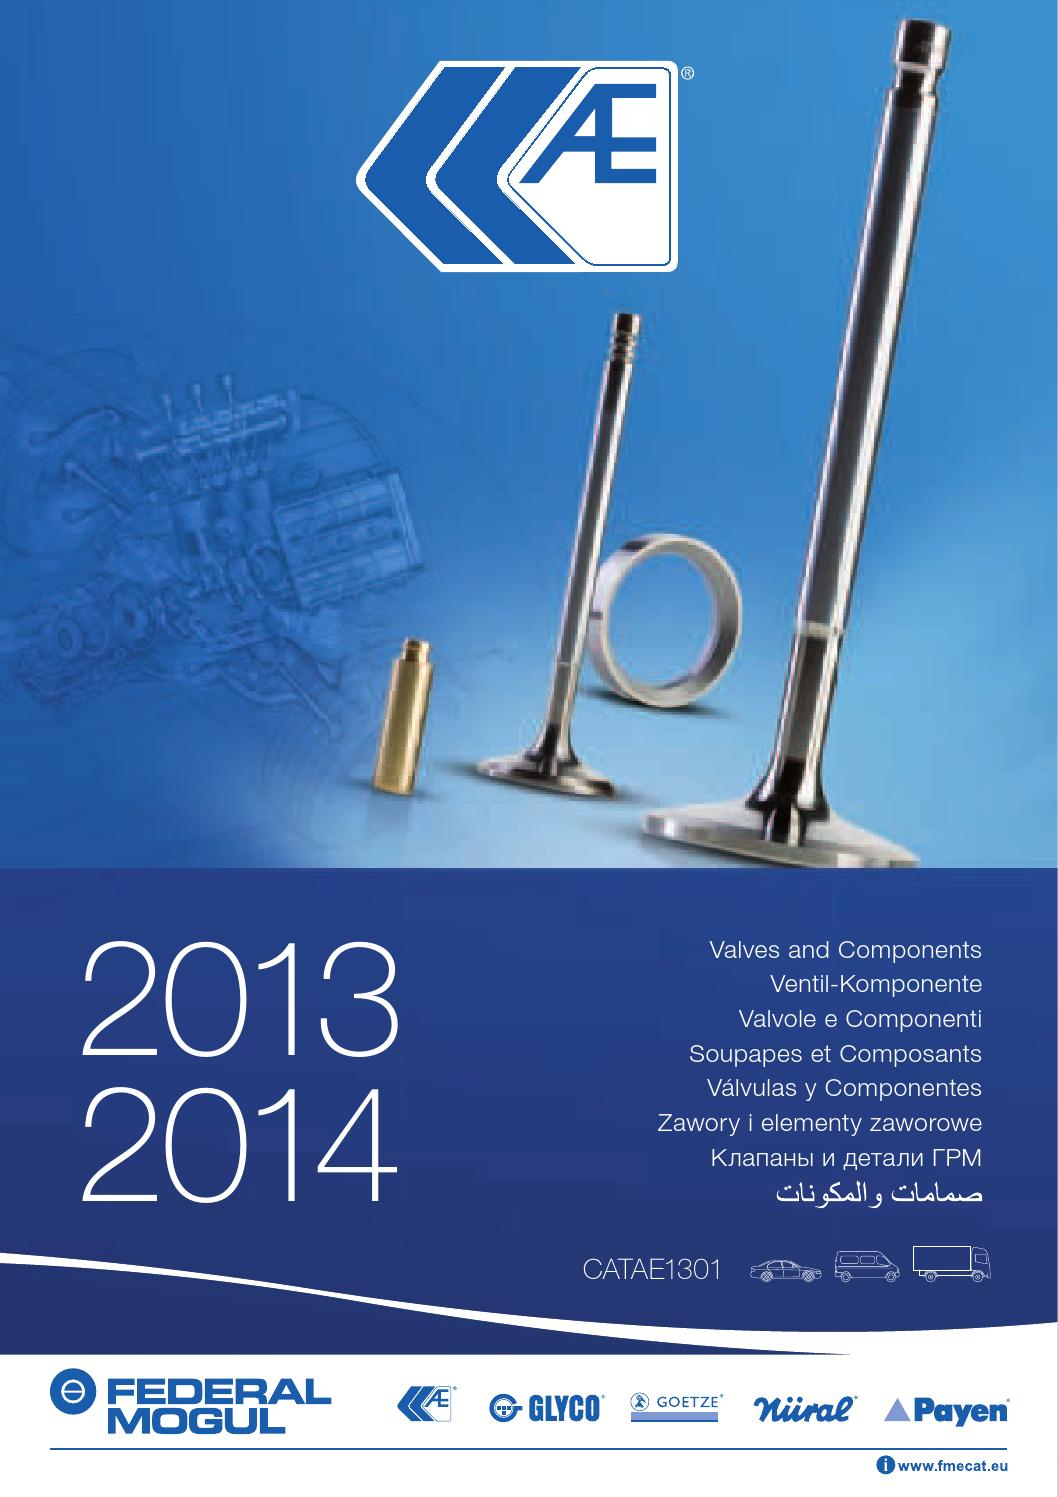 Ae valves 1314 1 by Dr  Culata - issuu